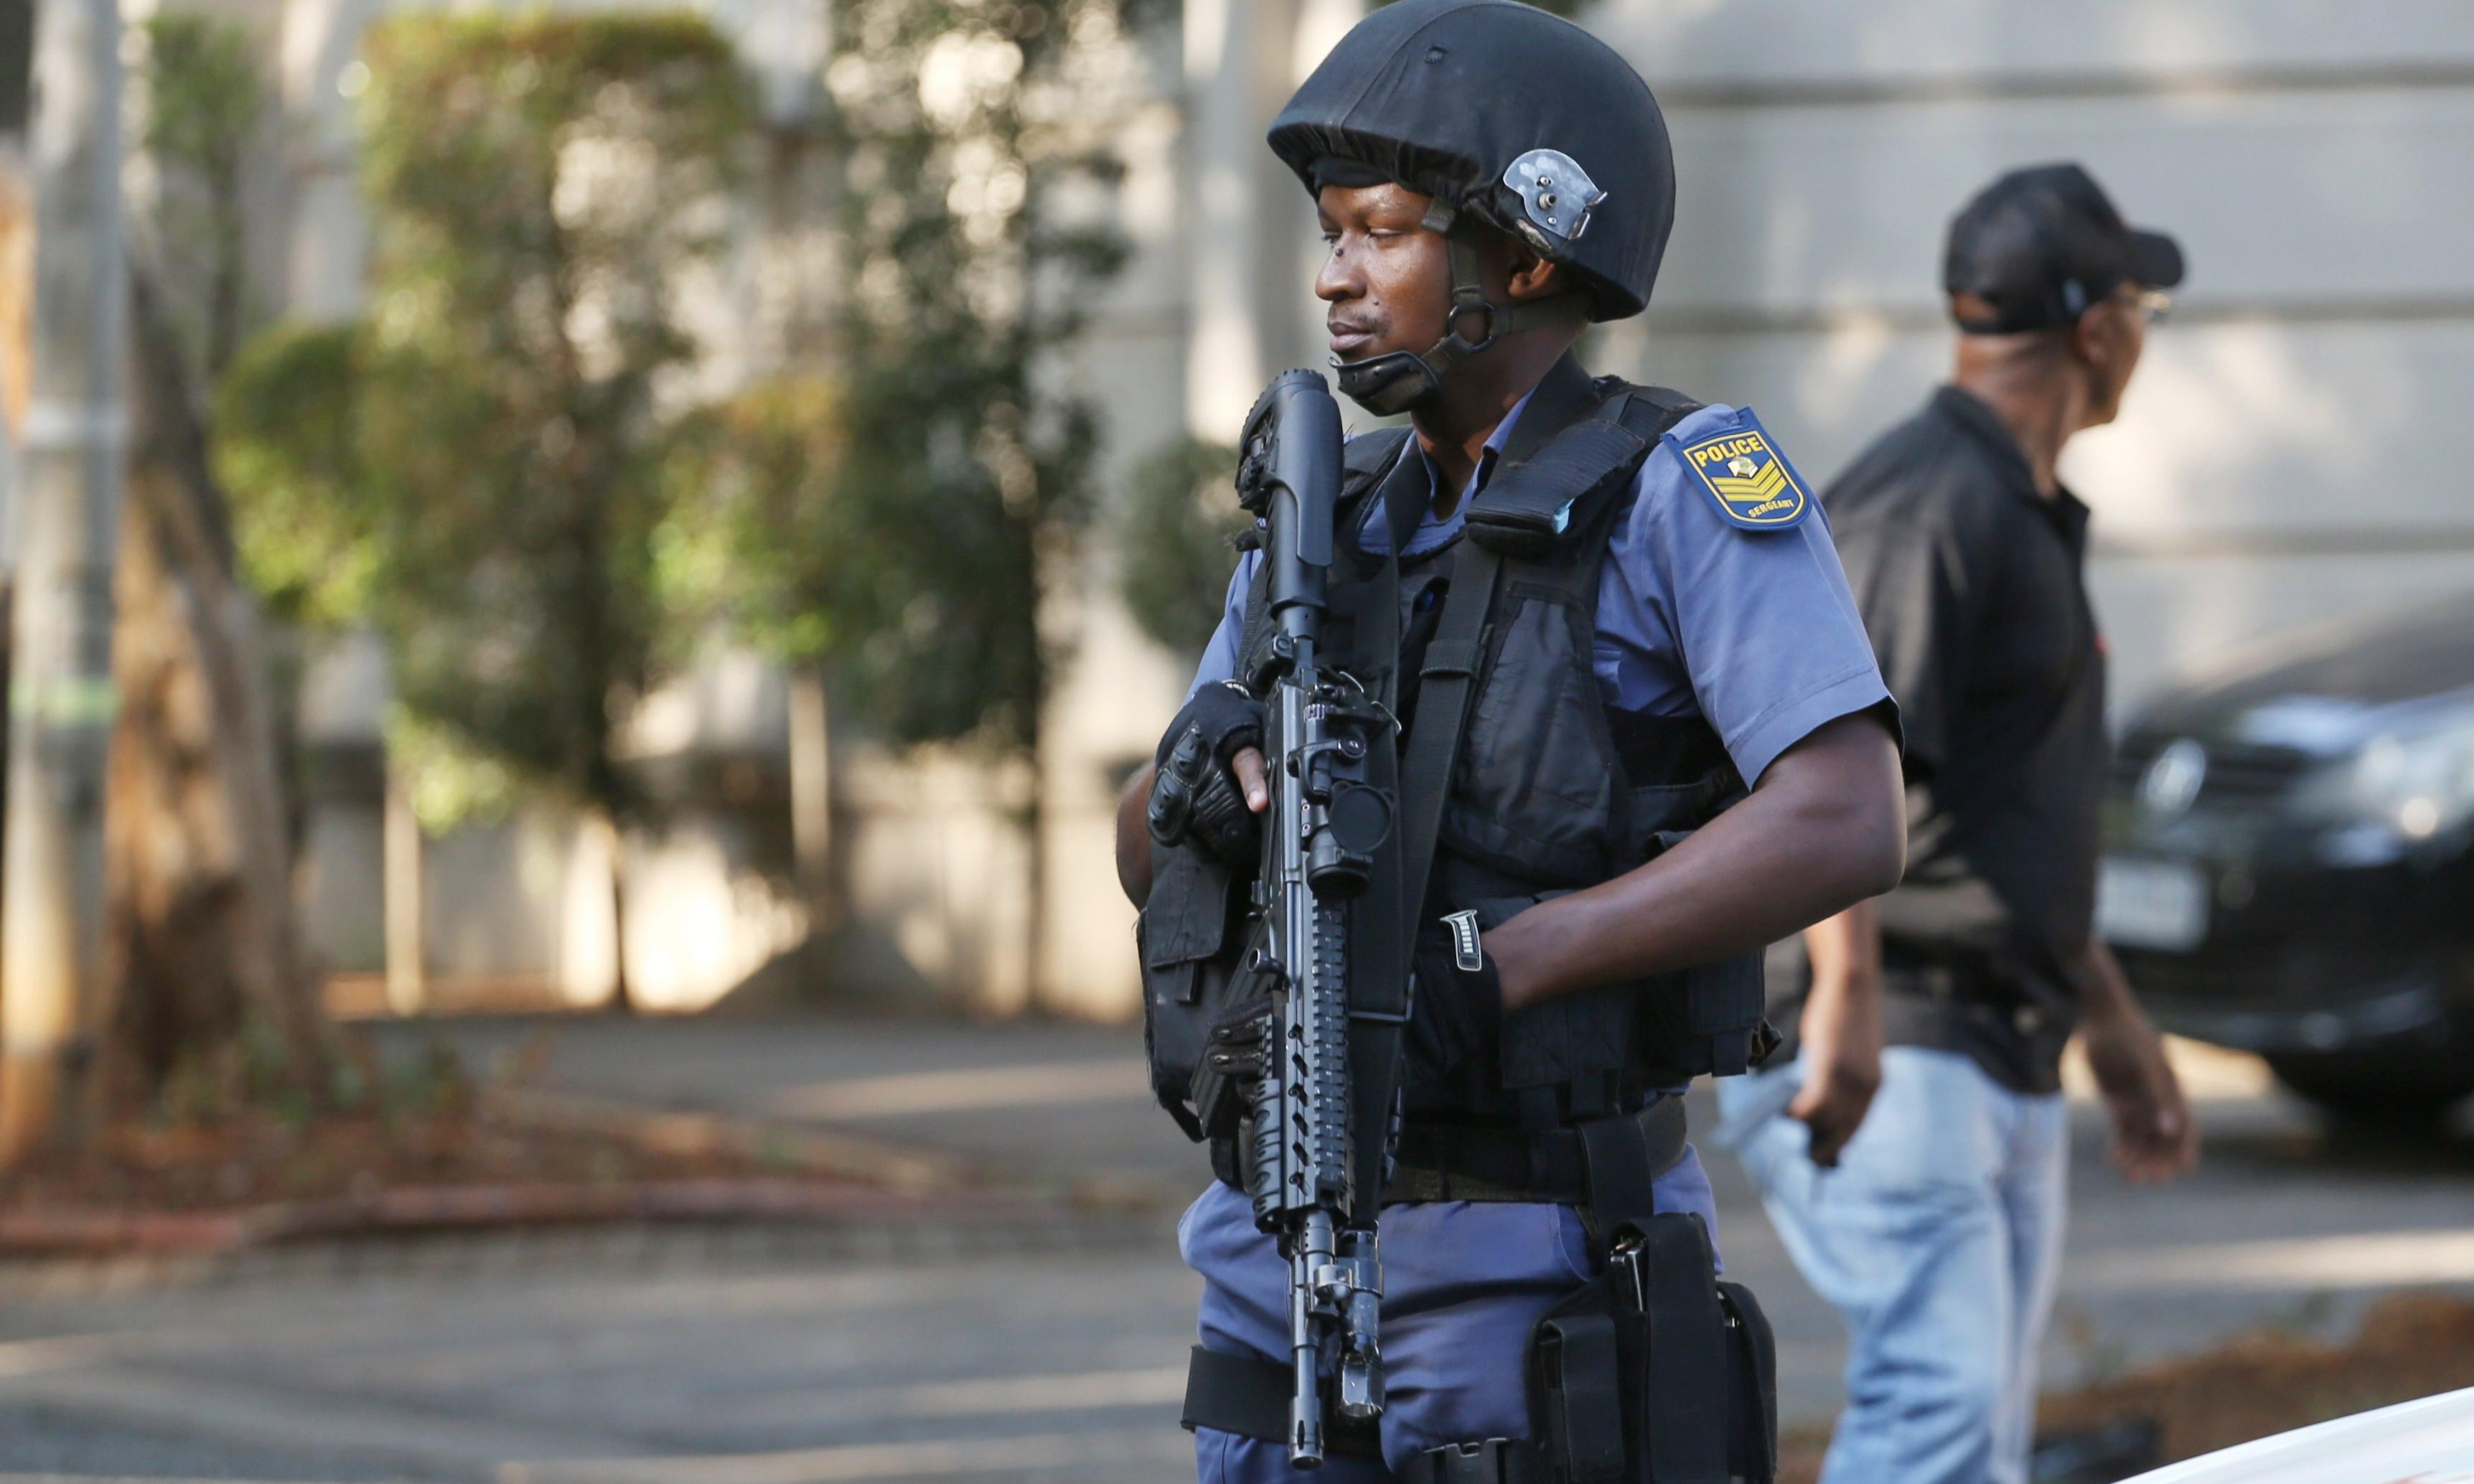 Foreign Office warns of Islamist threat in South Africa after British couple kidnapped